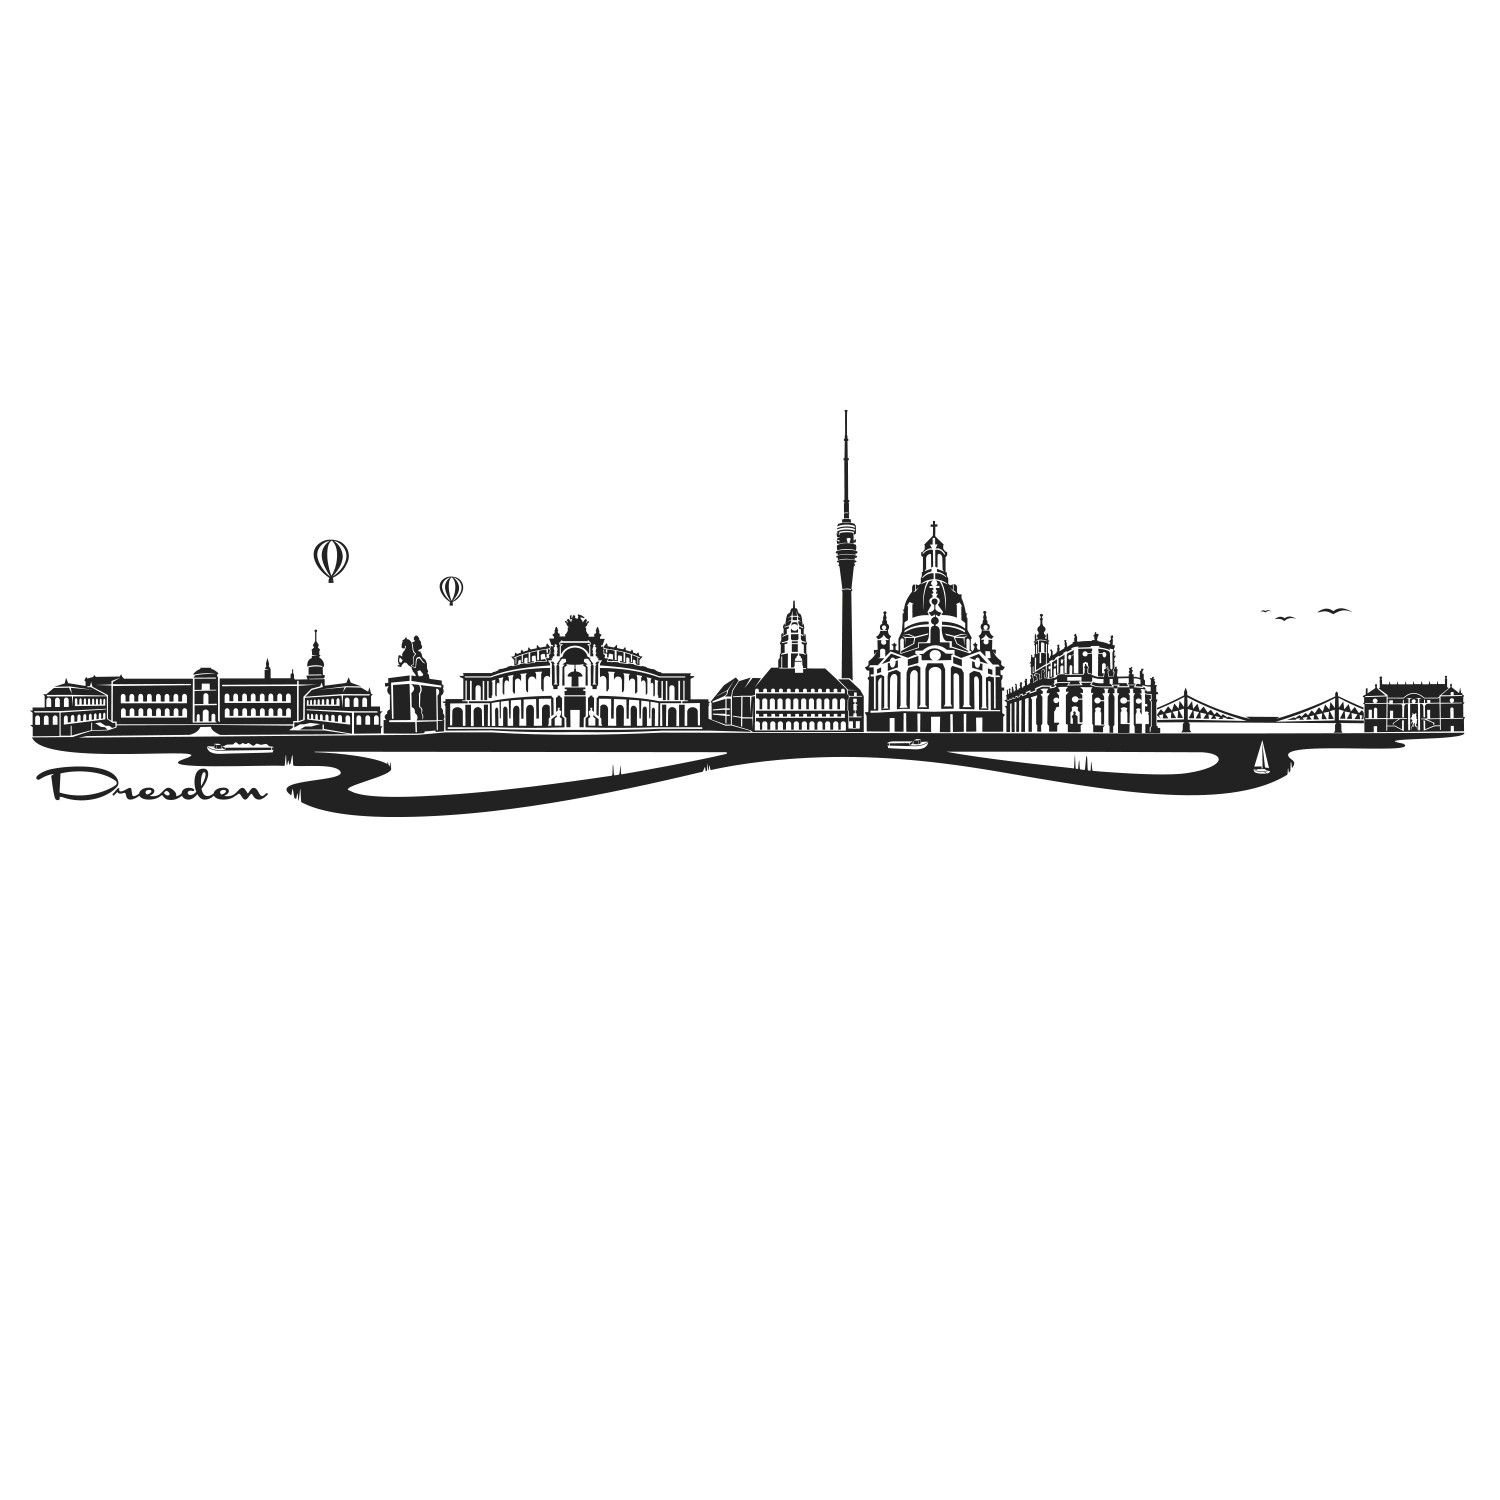 Wandtattoo Skyline Dresden | Tattoo | Pinterest | Skyline, Dresden ...